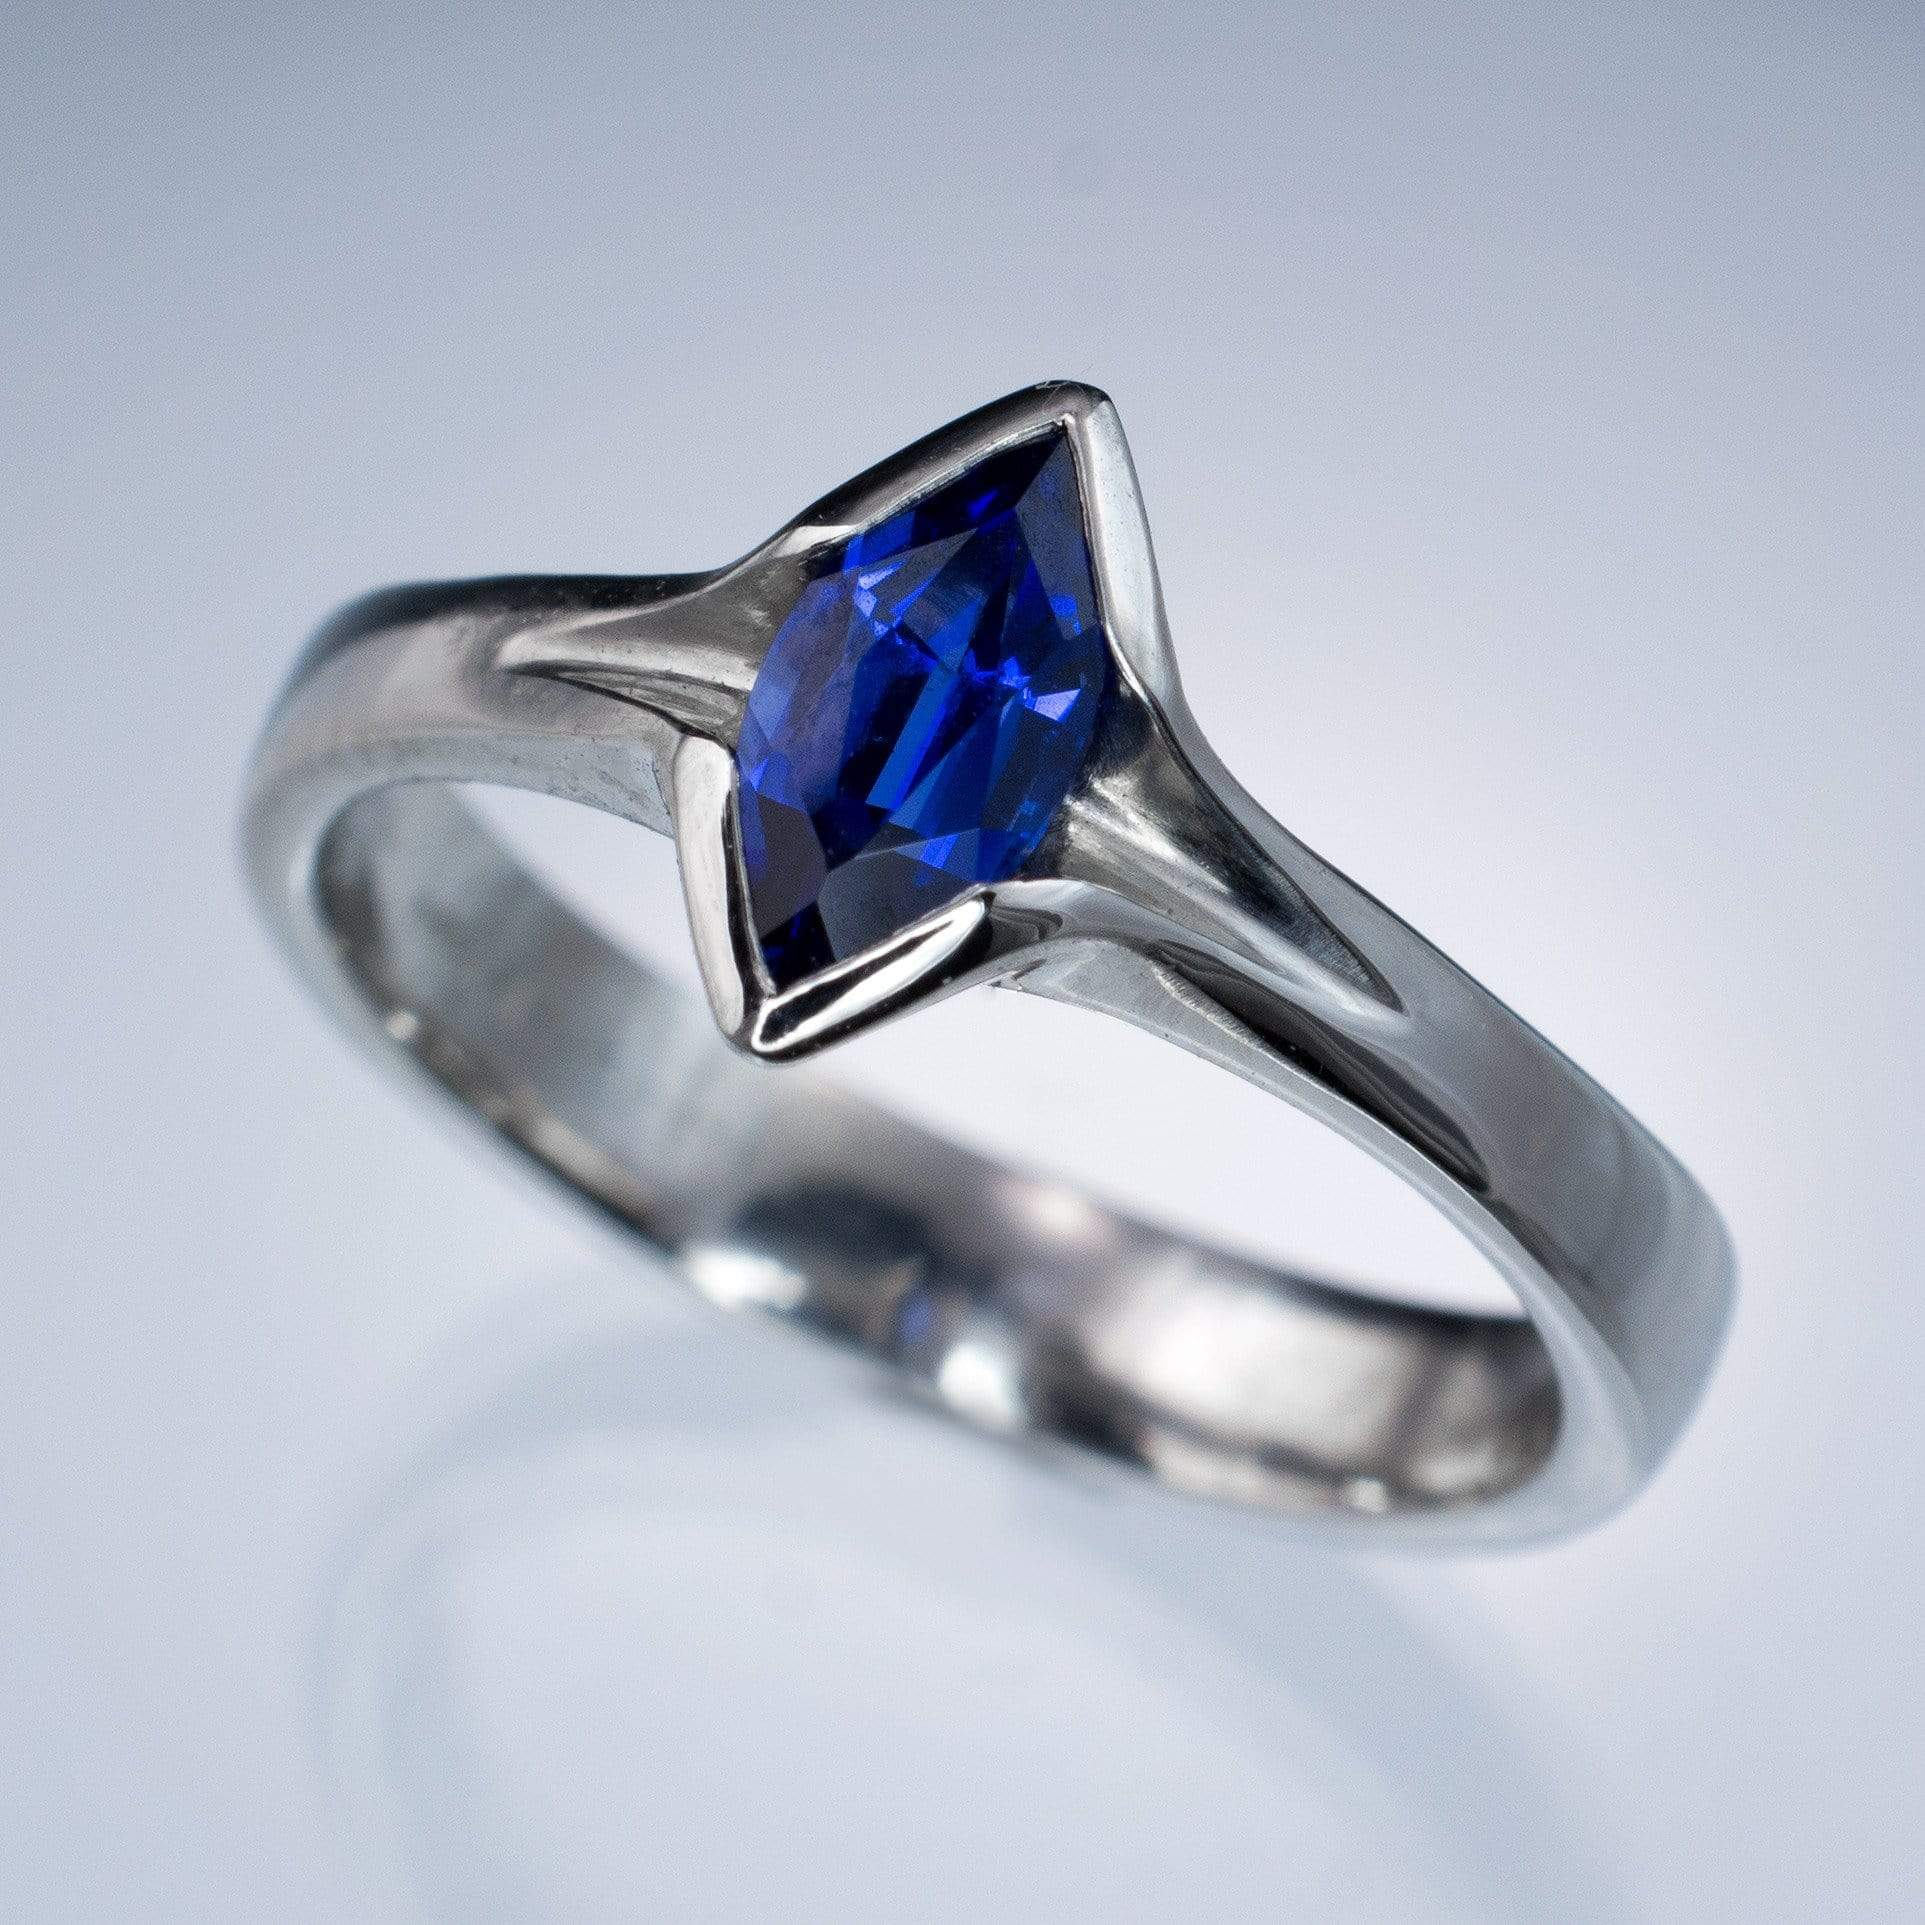 Chatham Marquise Blue Sapphire Semi-Bezel Solitaire Engagement Ring - by Nodeform